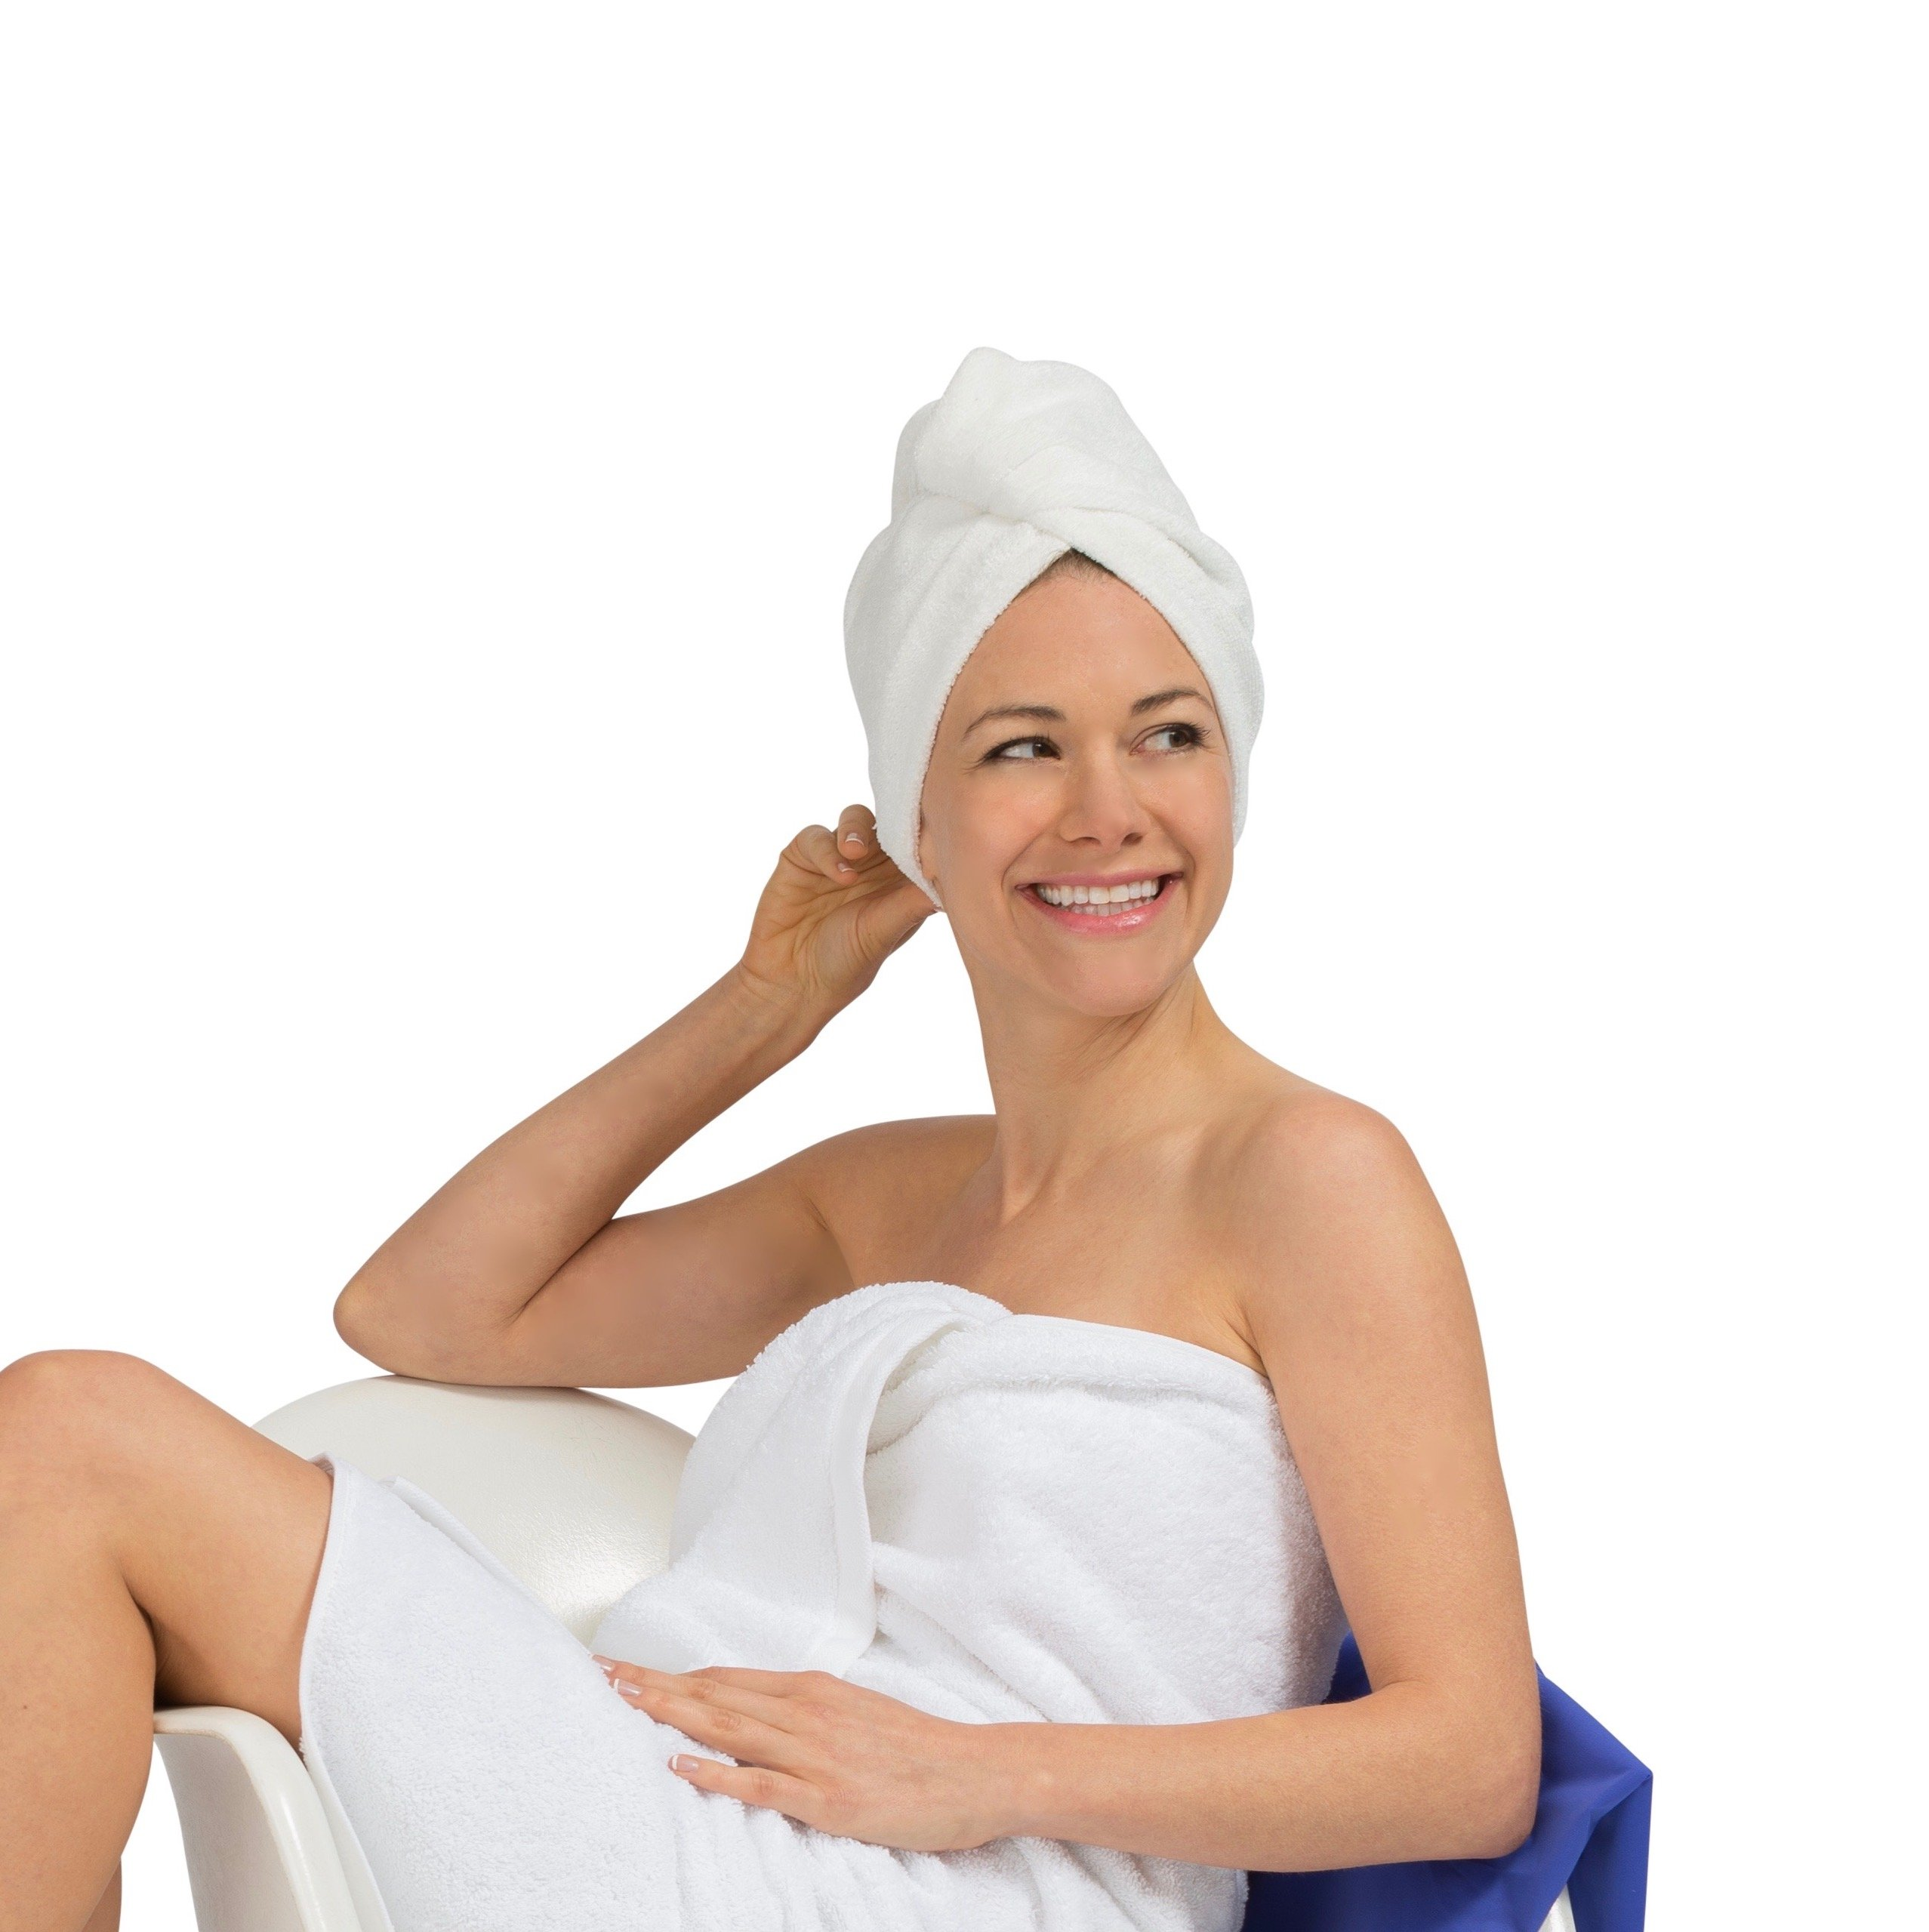 ENWRAPTURE The Only Luxury Hair Towel Wrap Made In USA | Swarovski Button | Nanofiber Beats Microfiber To Dry Wet Hair Fast | Twist Turban In 2 Easy Styles | Large For Long Or Curly | GIFT Travel Case by TURBELLA (Image #3)